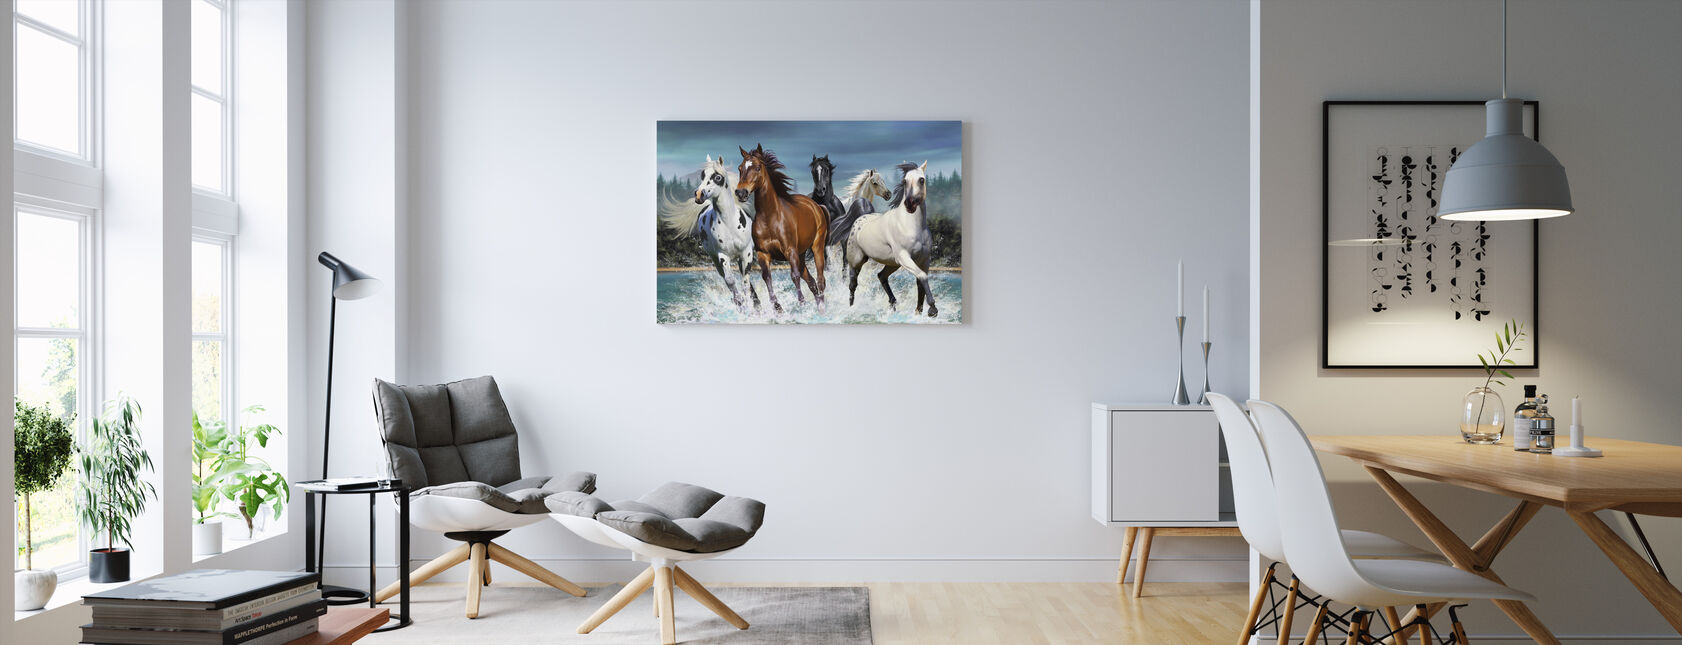 Running Horses - Canvas print - Living Room